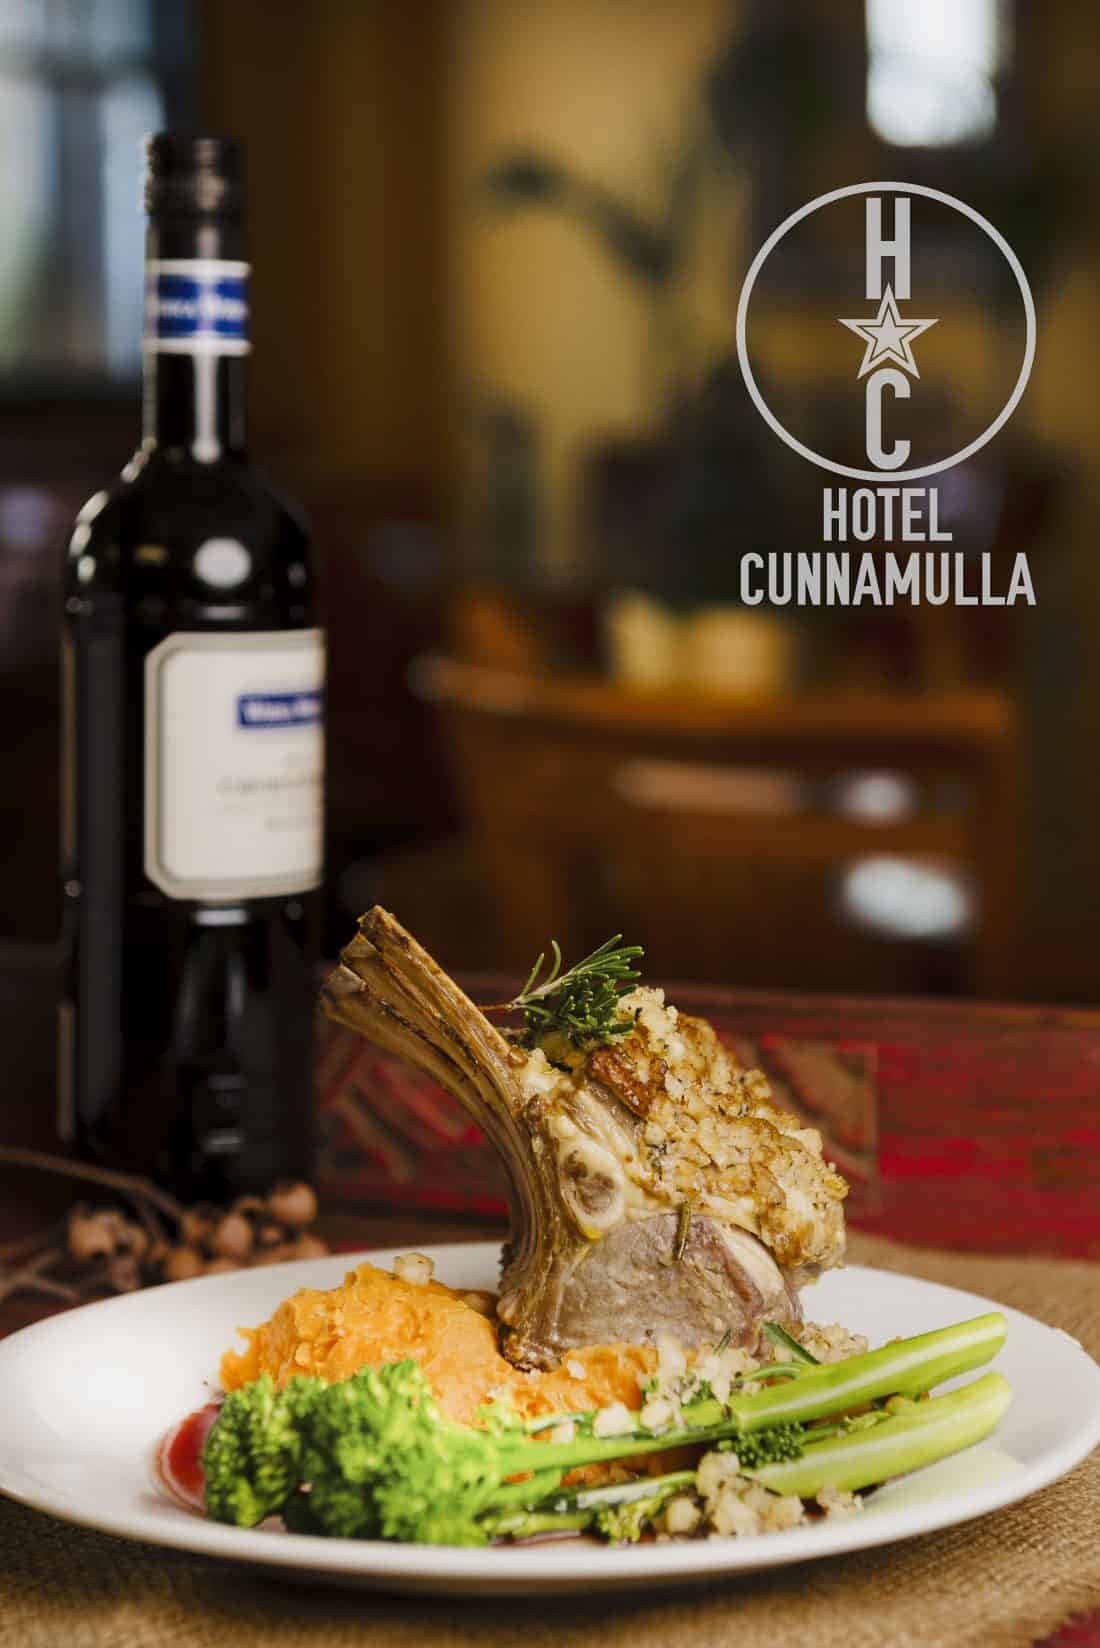 Hotel Cunnamulla Restaurant - food from the farm, not a factory. Our restaurant is the best alternative featuring farm fresh and local produce, liscenced cafe too!